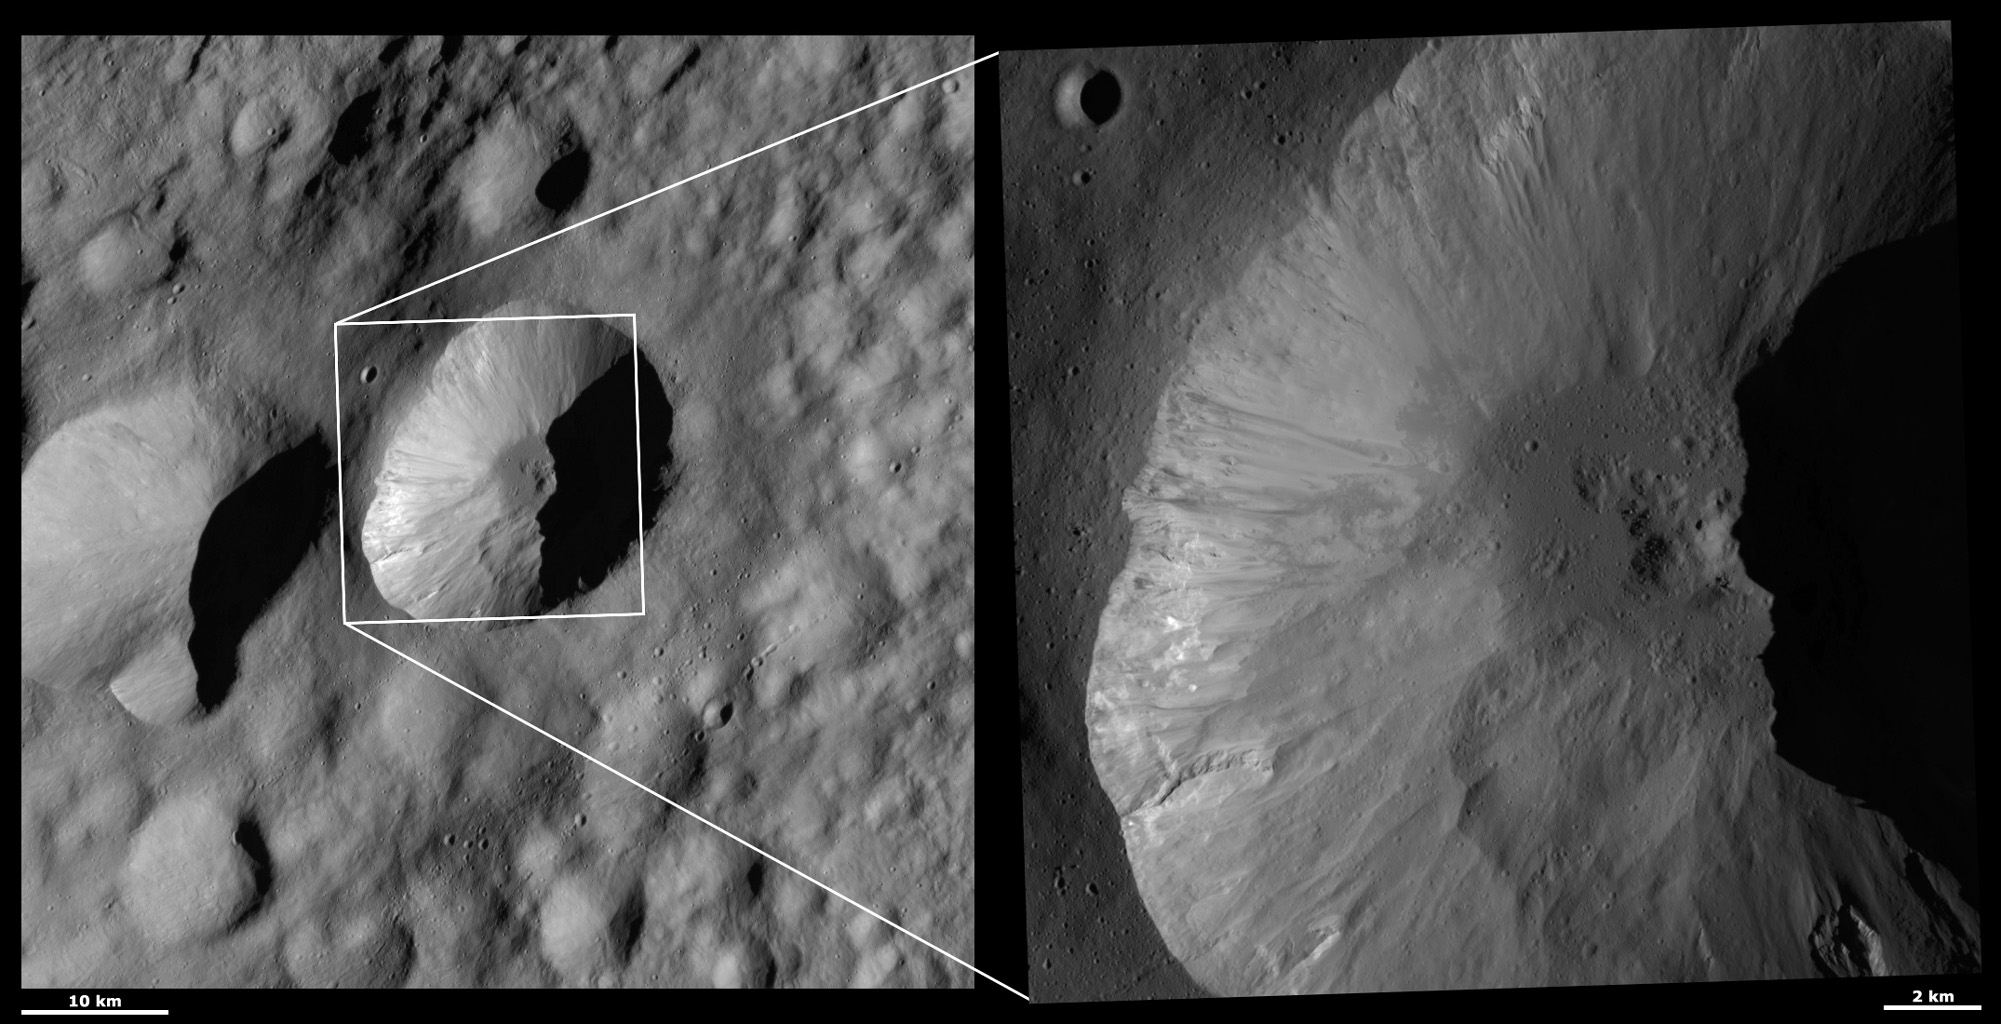 HAMO and LAMO Images of Licinia Crater